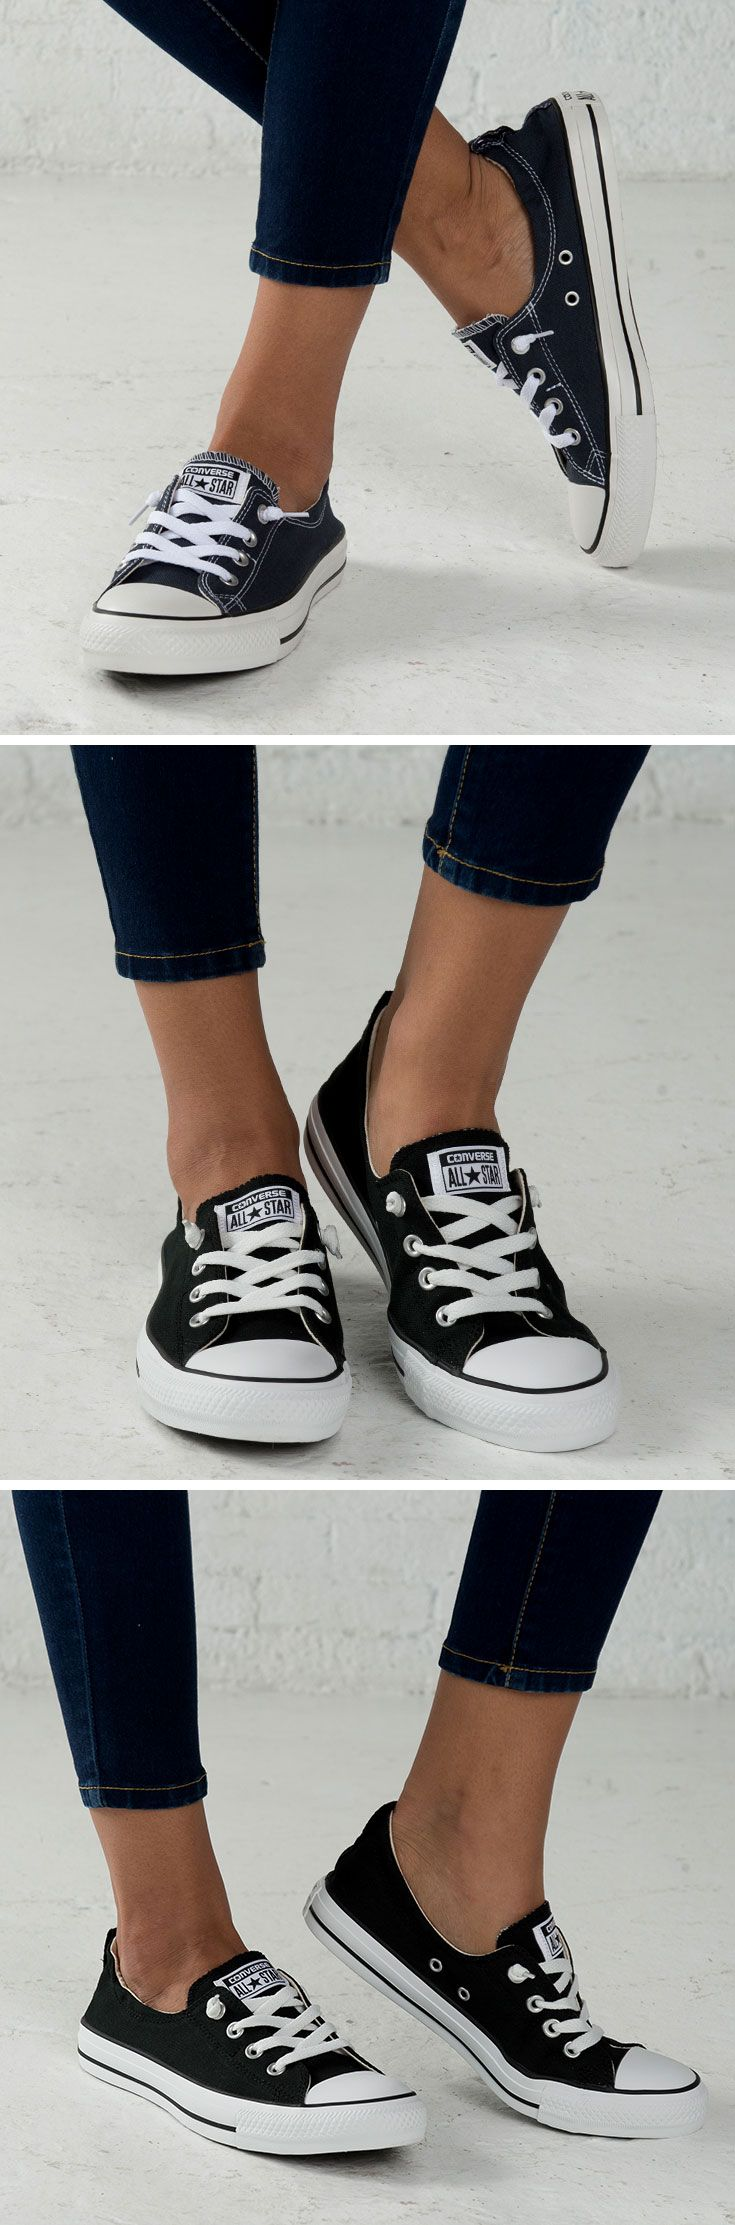 Converse Shorelines — fashionable, feminine, and comfortable. Slip on a pair to complete your summer wardrobe!